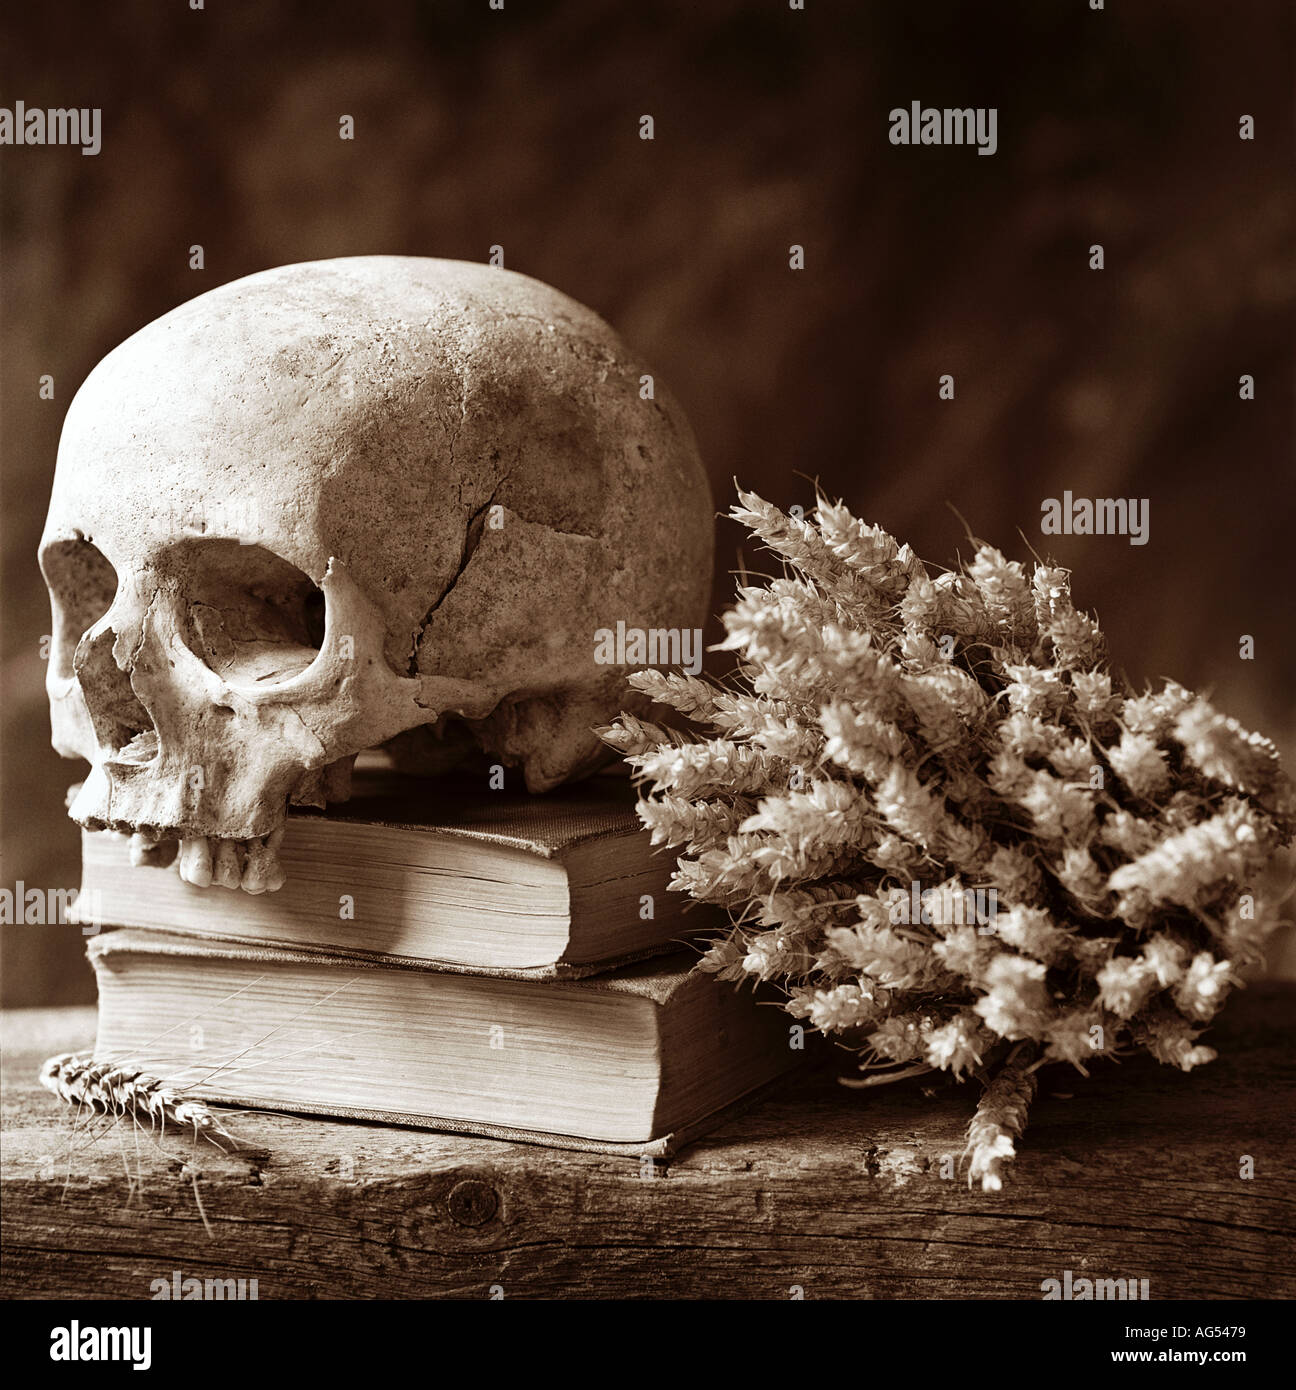 poetry litterature life death phylosophy skull thinking hamlet shakespear human - Stock Image